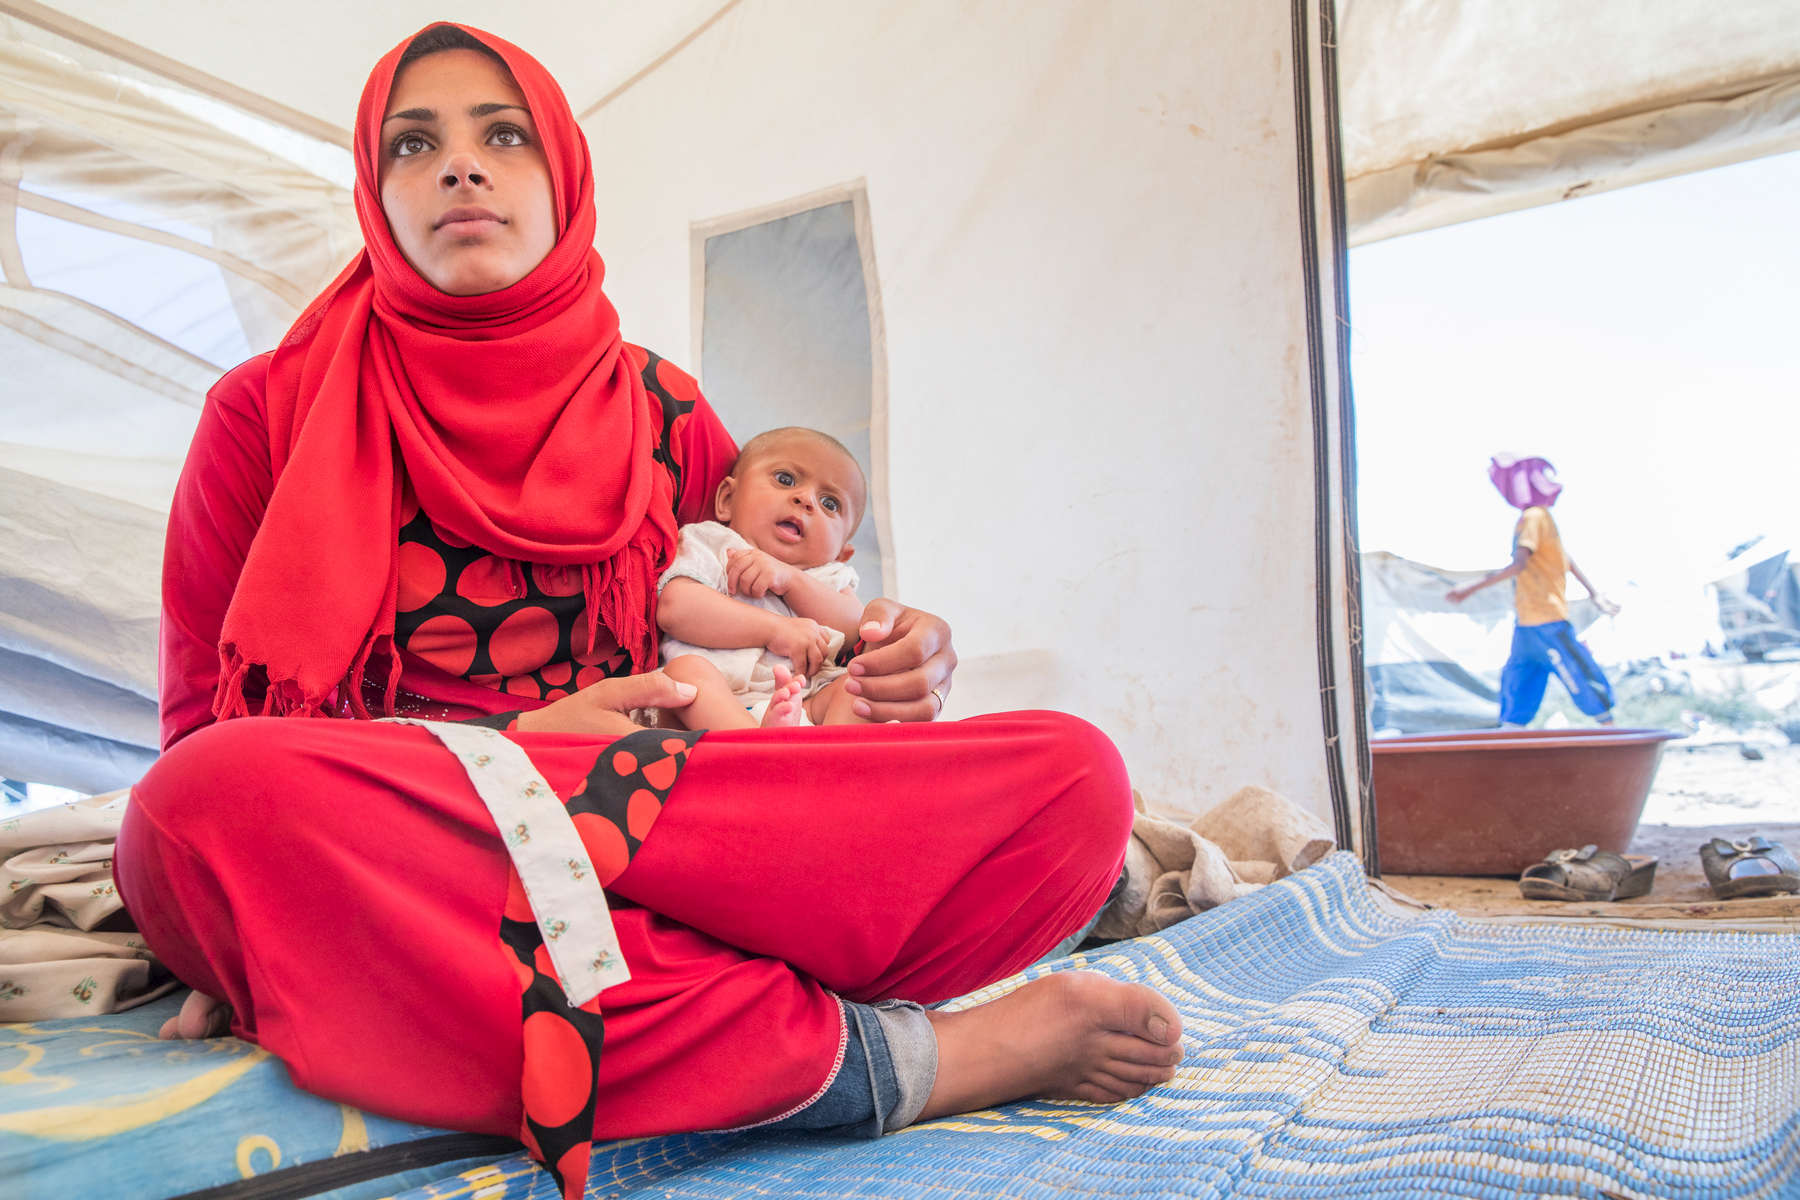 Marwa holds her 3 month-old daughter Farah, inside the tent where they are staying temporarily. She and her husband, Ali, fled the violence in their hometown and are now living in a displacement camp. Ali used to work selling vegetables out of his car, but there is no work in the camp. Mercy Corps is helping to meet the needs of families across Syria who are fleeing the violent conflict, providing them with basic essentials. This has included providing new arrival kits in this informal settlement.